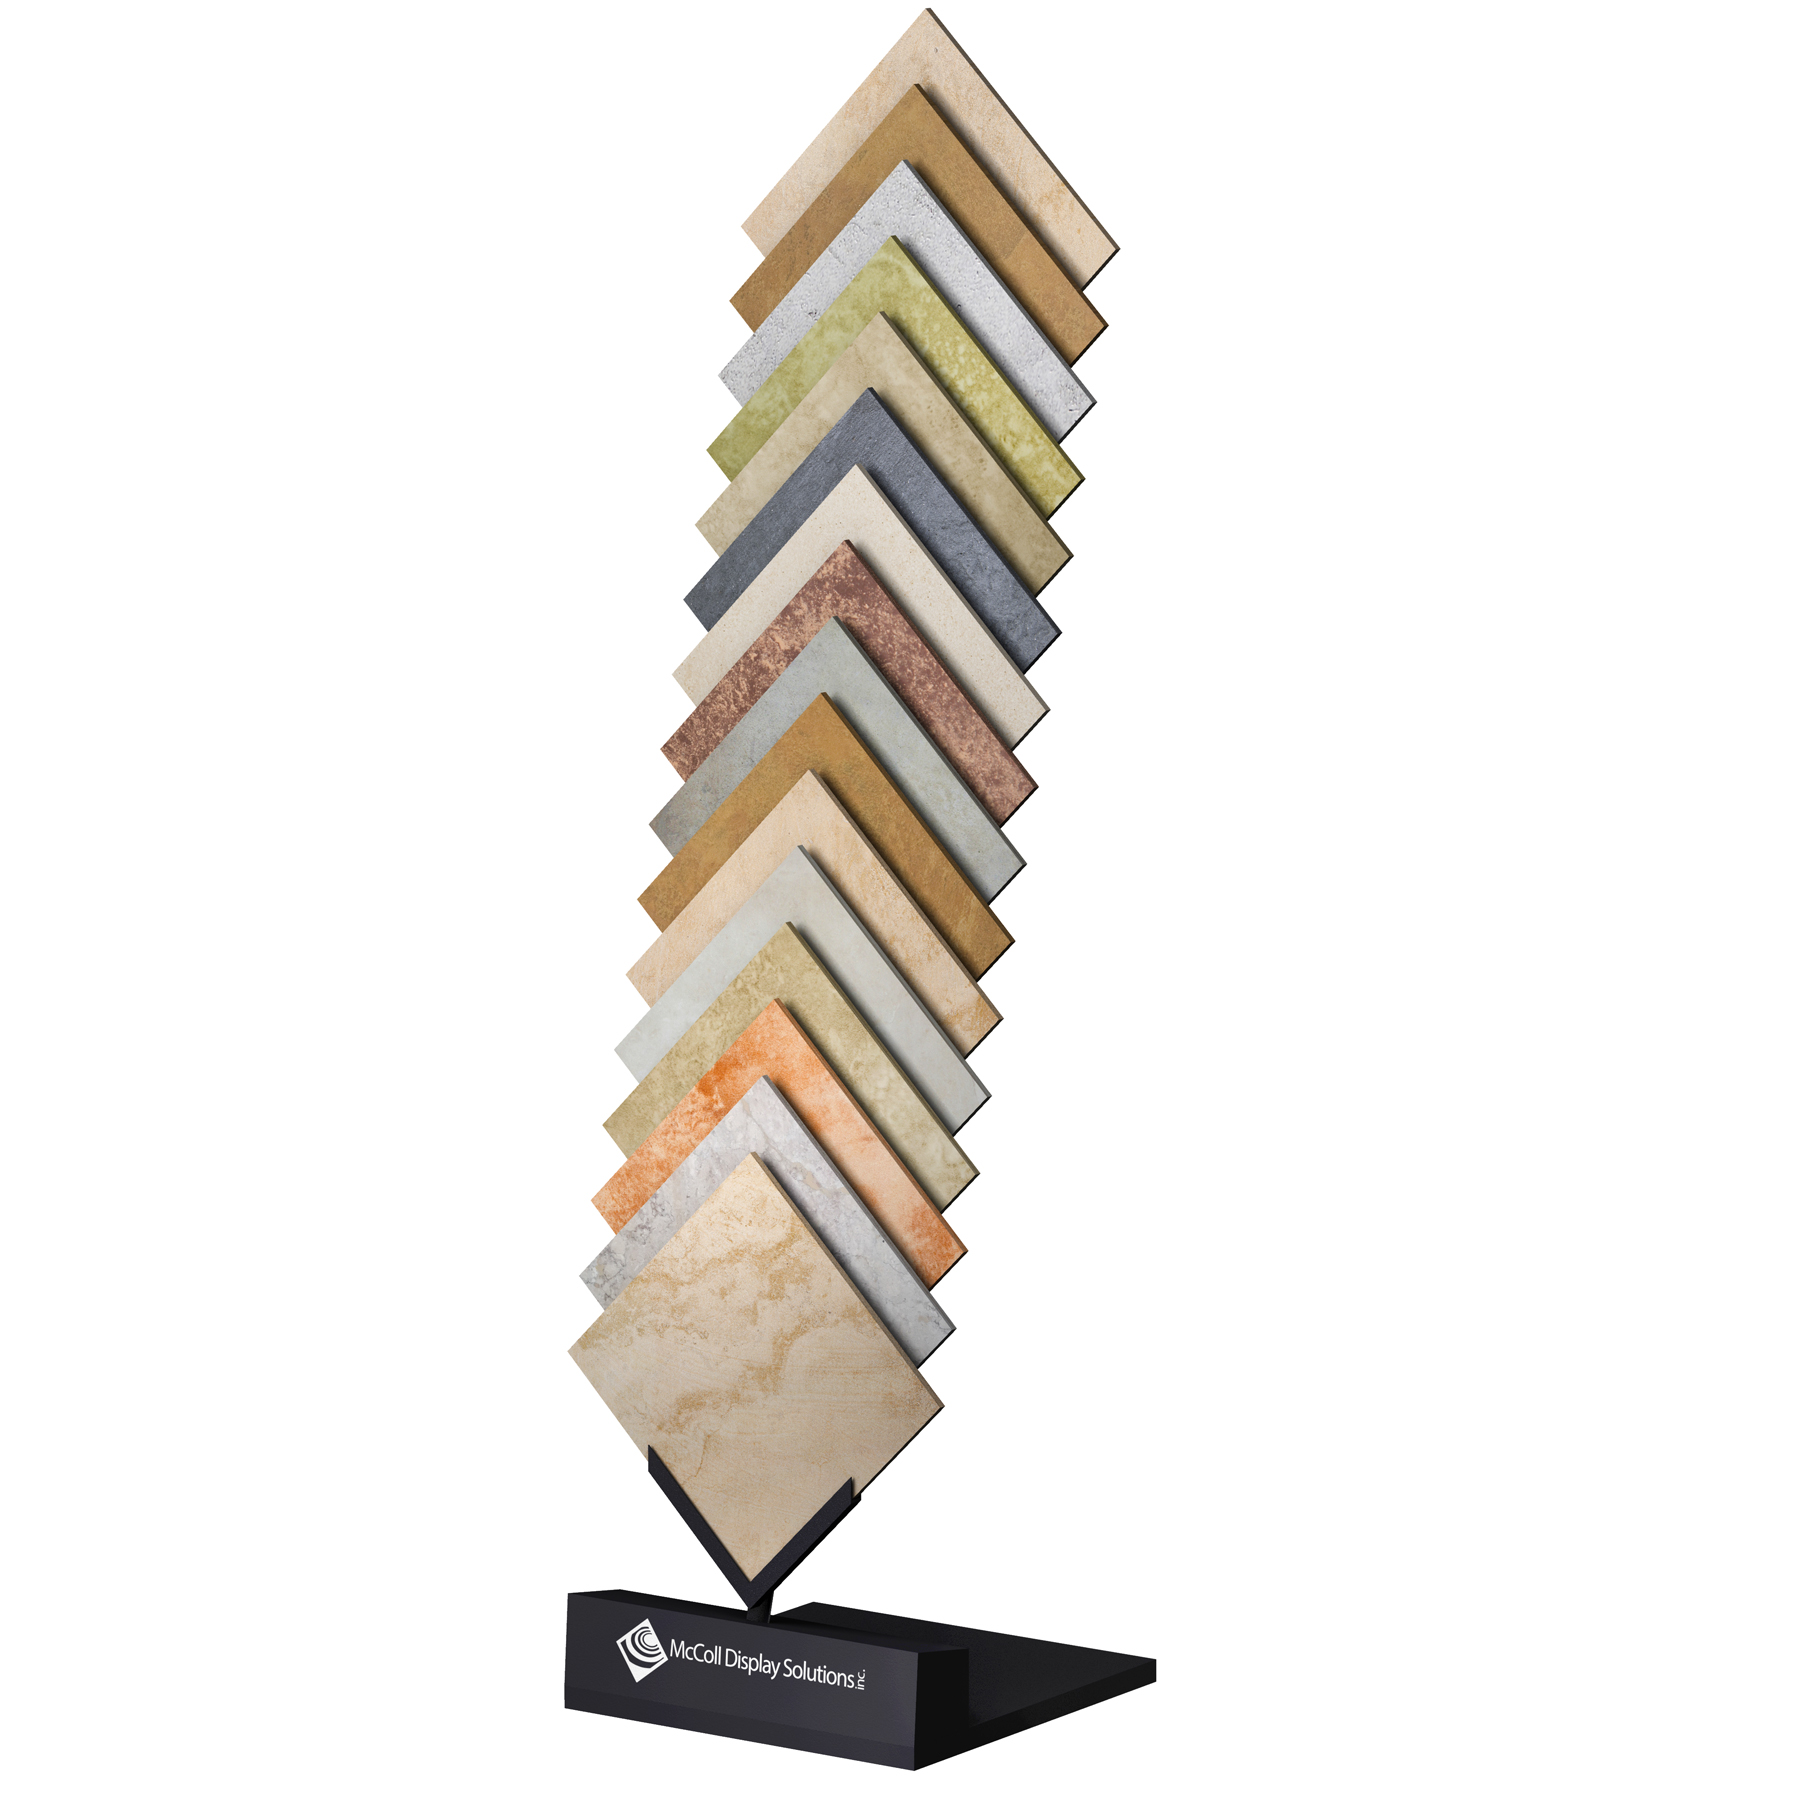 McReady Sample Rack Tower Easy Shipping Displays Ceramic Tiles Stone Marble Quartz Granite Samples Showroom Display Made in the USA